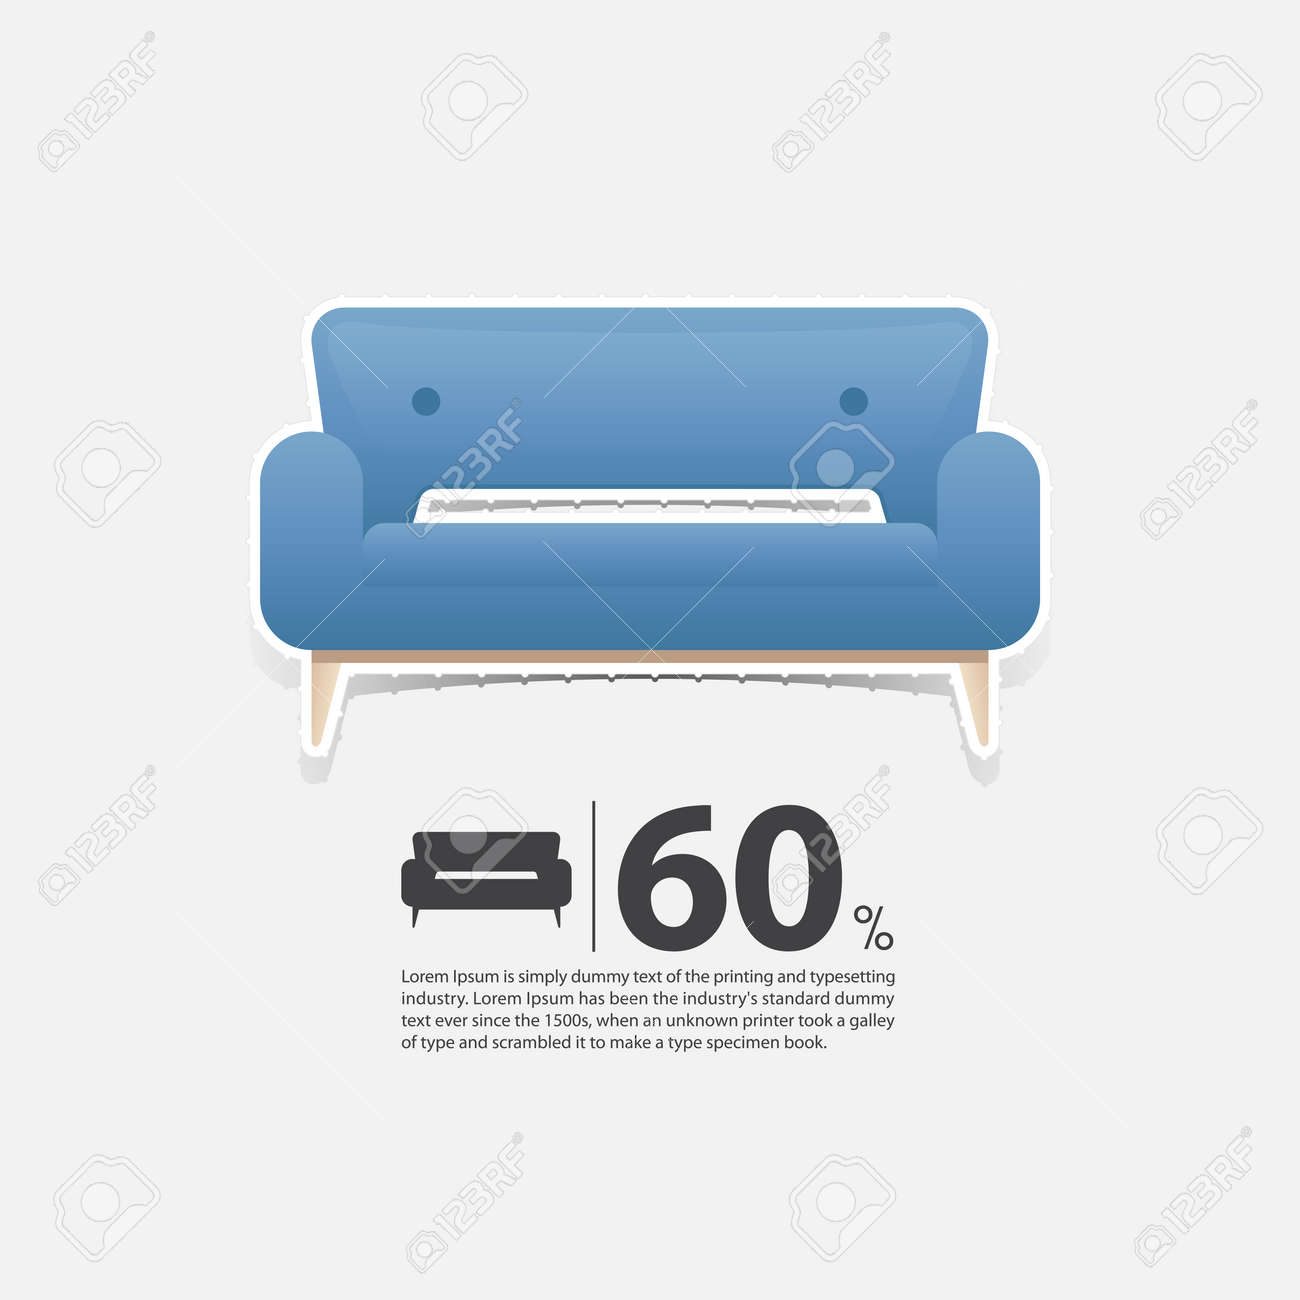 Sofa In Flat Design For Living Room Interior Minimal Couch Icon Royalty Free Cliparts Vectors And Stock Illustration Image 74645919